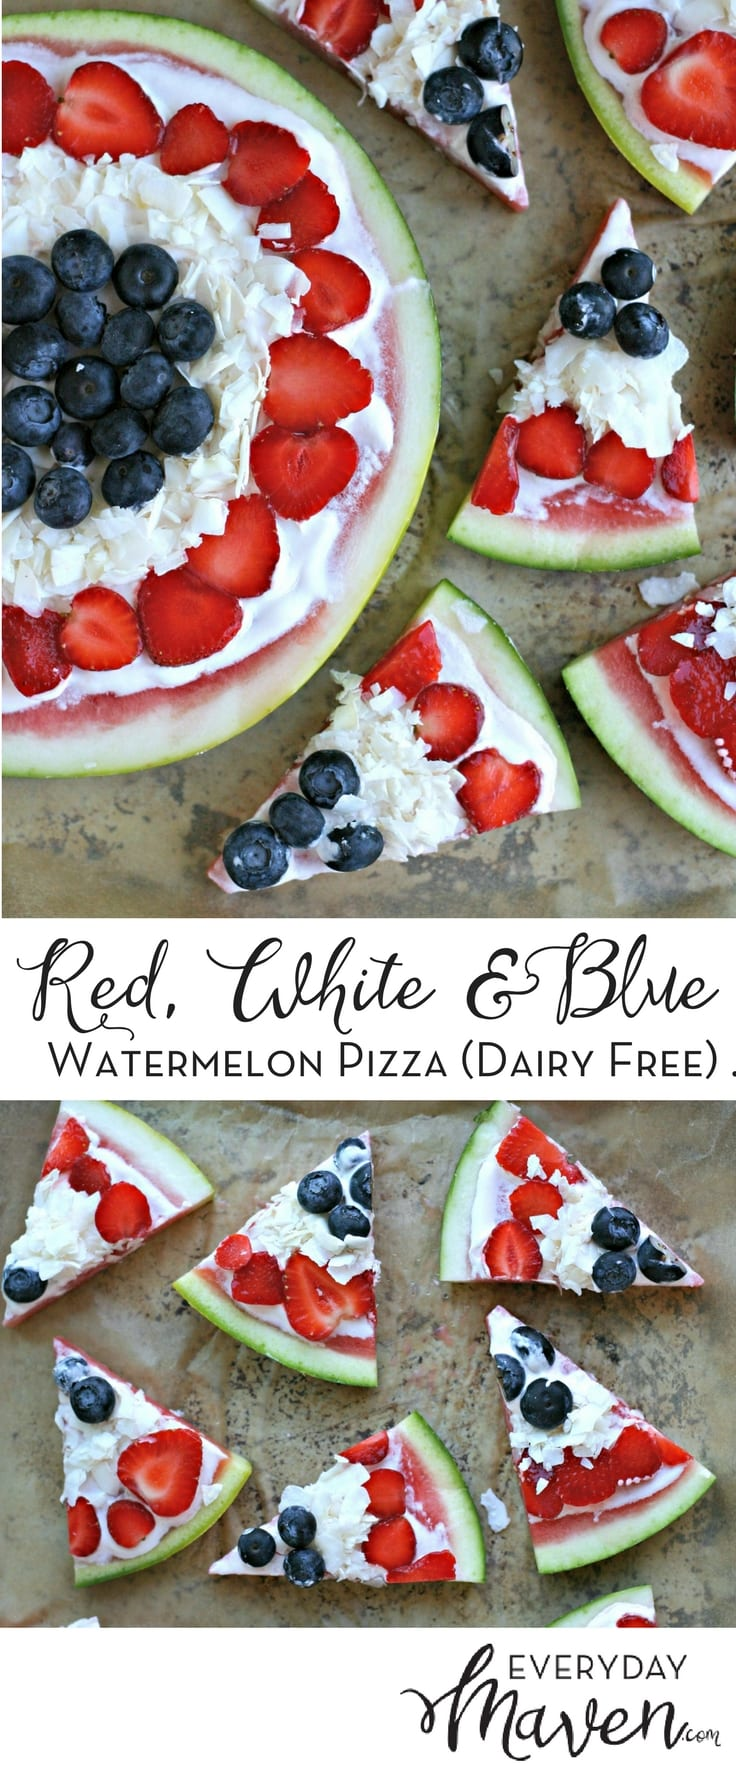 Red, White and Blue Watermelon Pizza. A healthy take on a fun summer dessert that is gluten free and dairy free! Perfect for Memorial Day and July 4th!